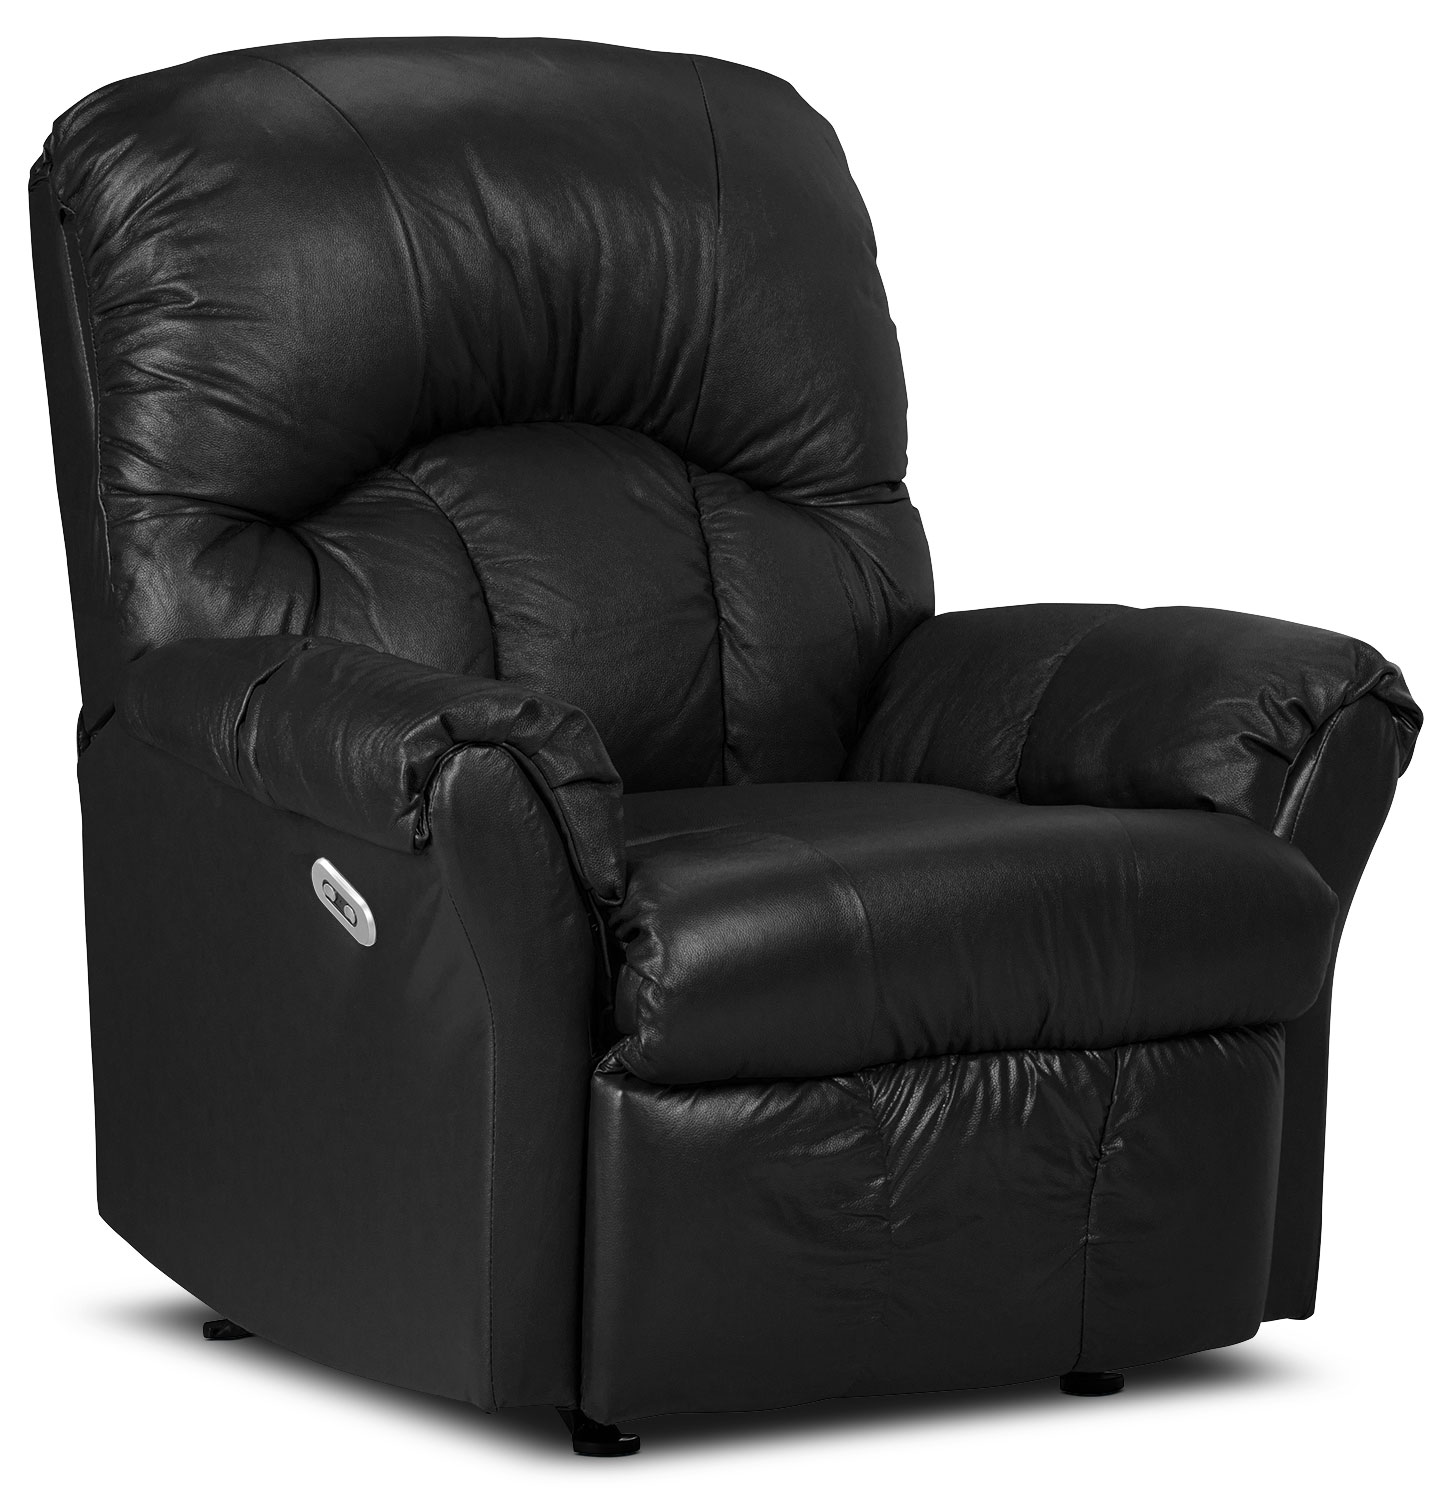 Designed2B Recliner 6734 Genuine Leather Power Recliner Chair - Black